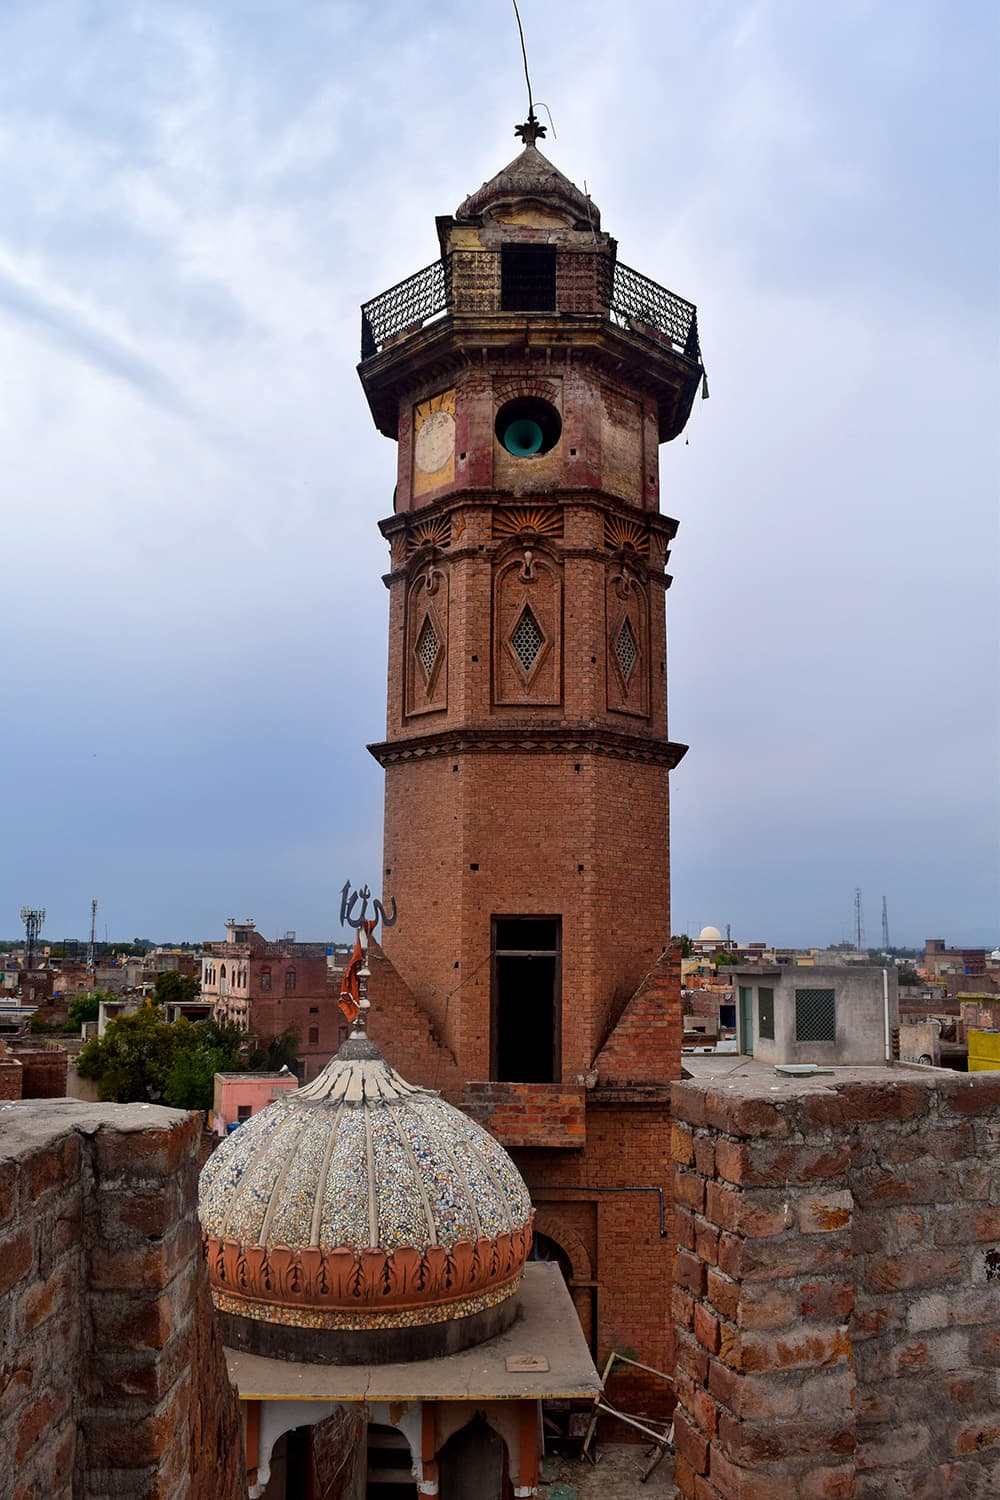 The tower of Gurdwara Sahib, now an imambargah.